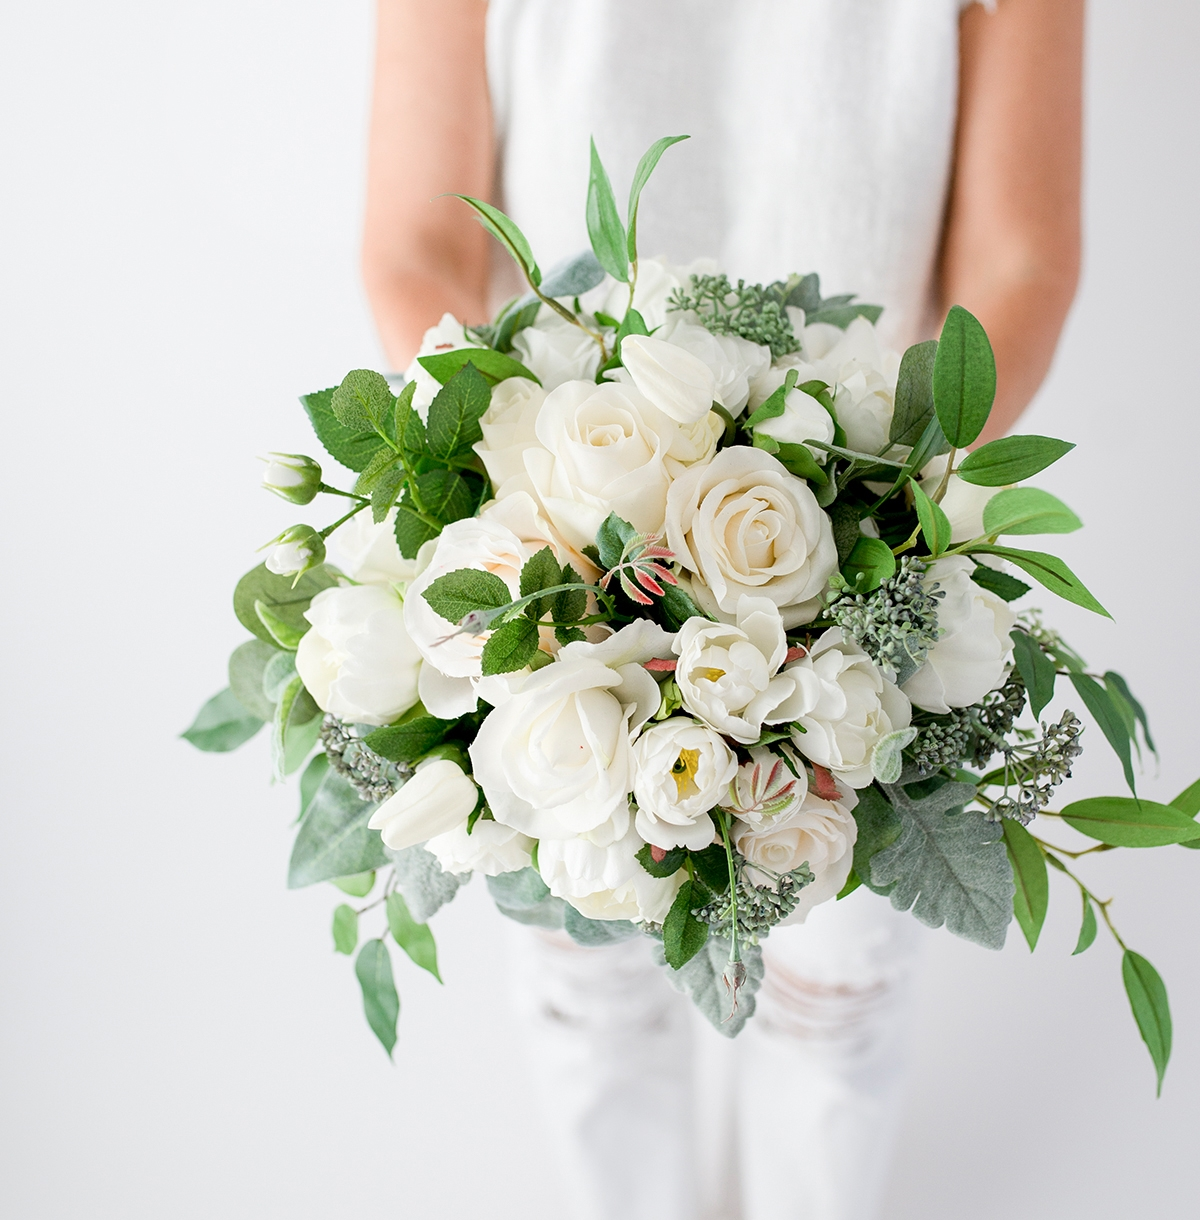 Flower Wedding Bouquet: Eucalyptus Roses And Fillers